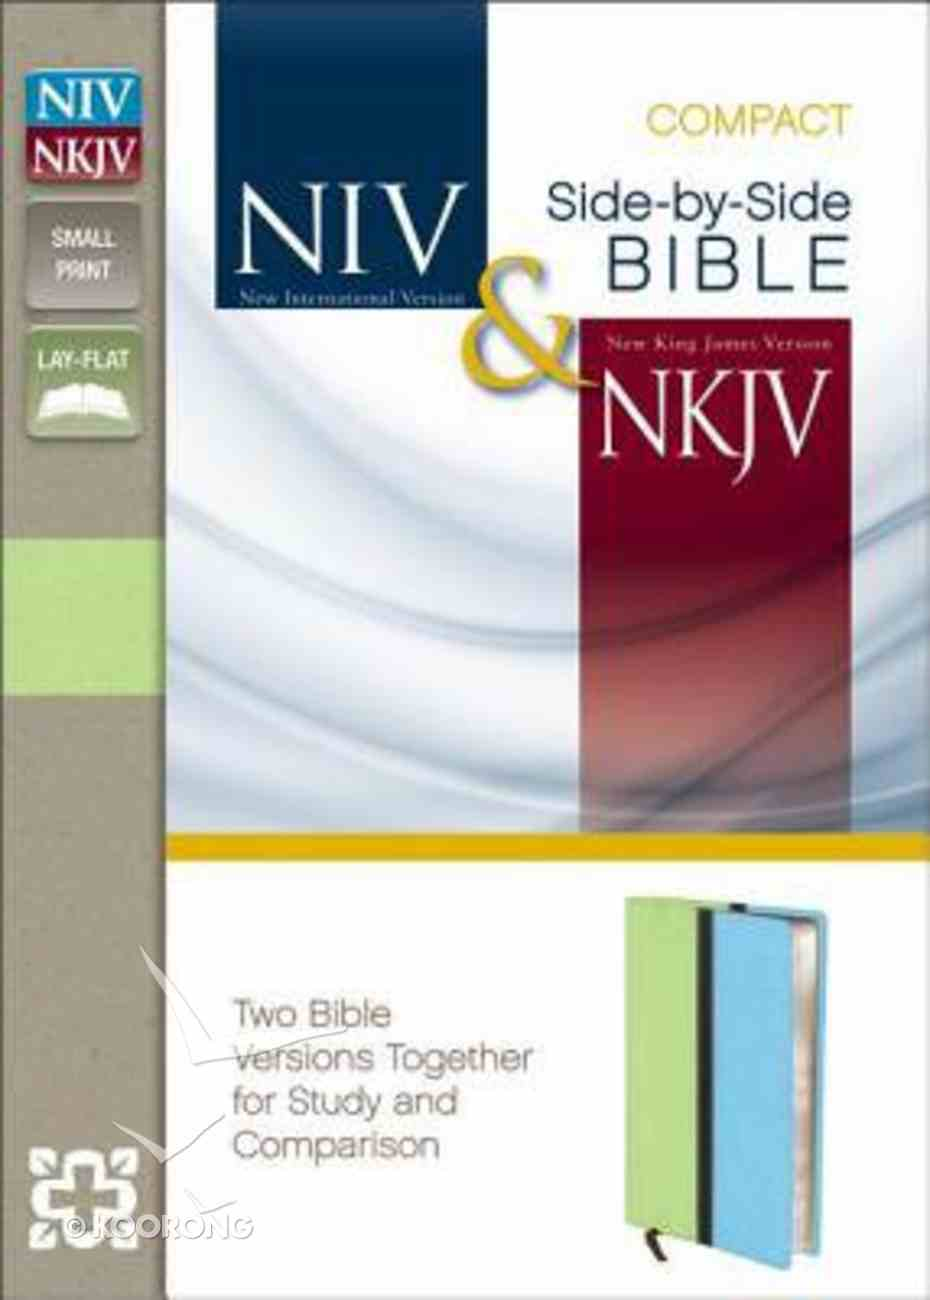 Niv/Nkjv Side-By-Side Bible Compact Melon Green/Turquoise (Black Letter Edition) Premium Imitation Leather